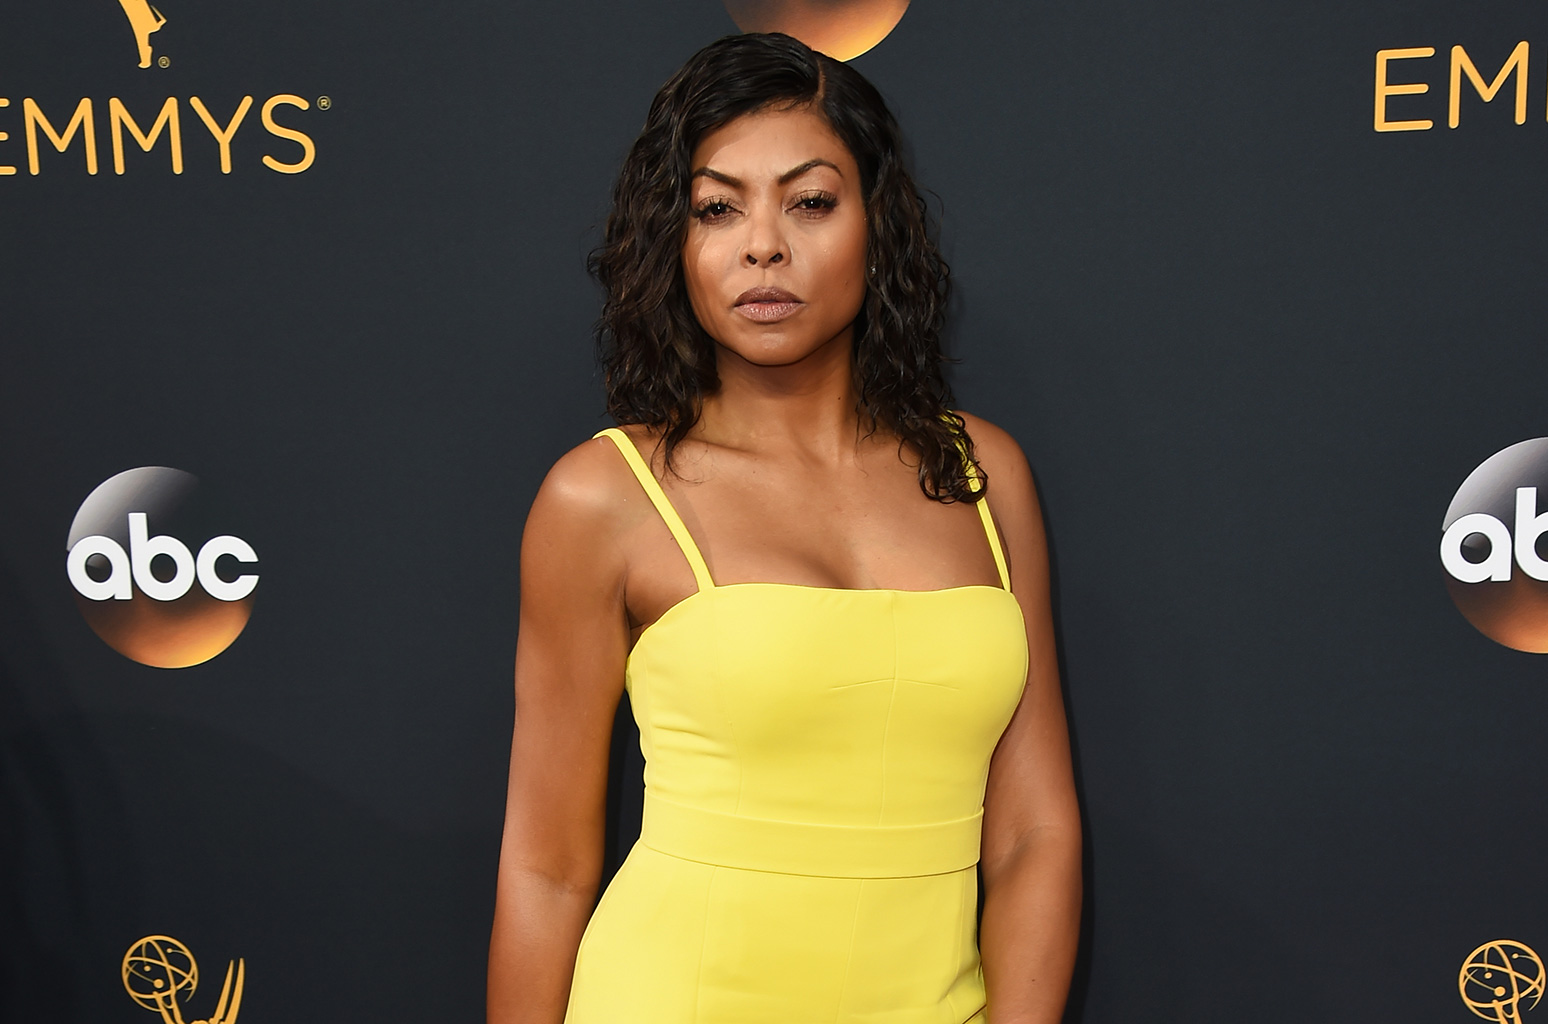 taraji-p_-henson-emmy-red-carpet-2016-billboard-1548.jpg